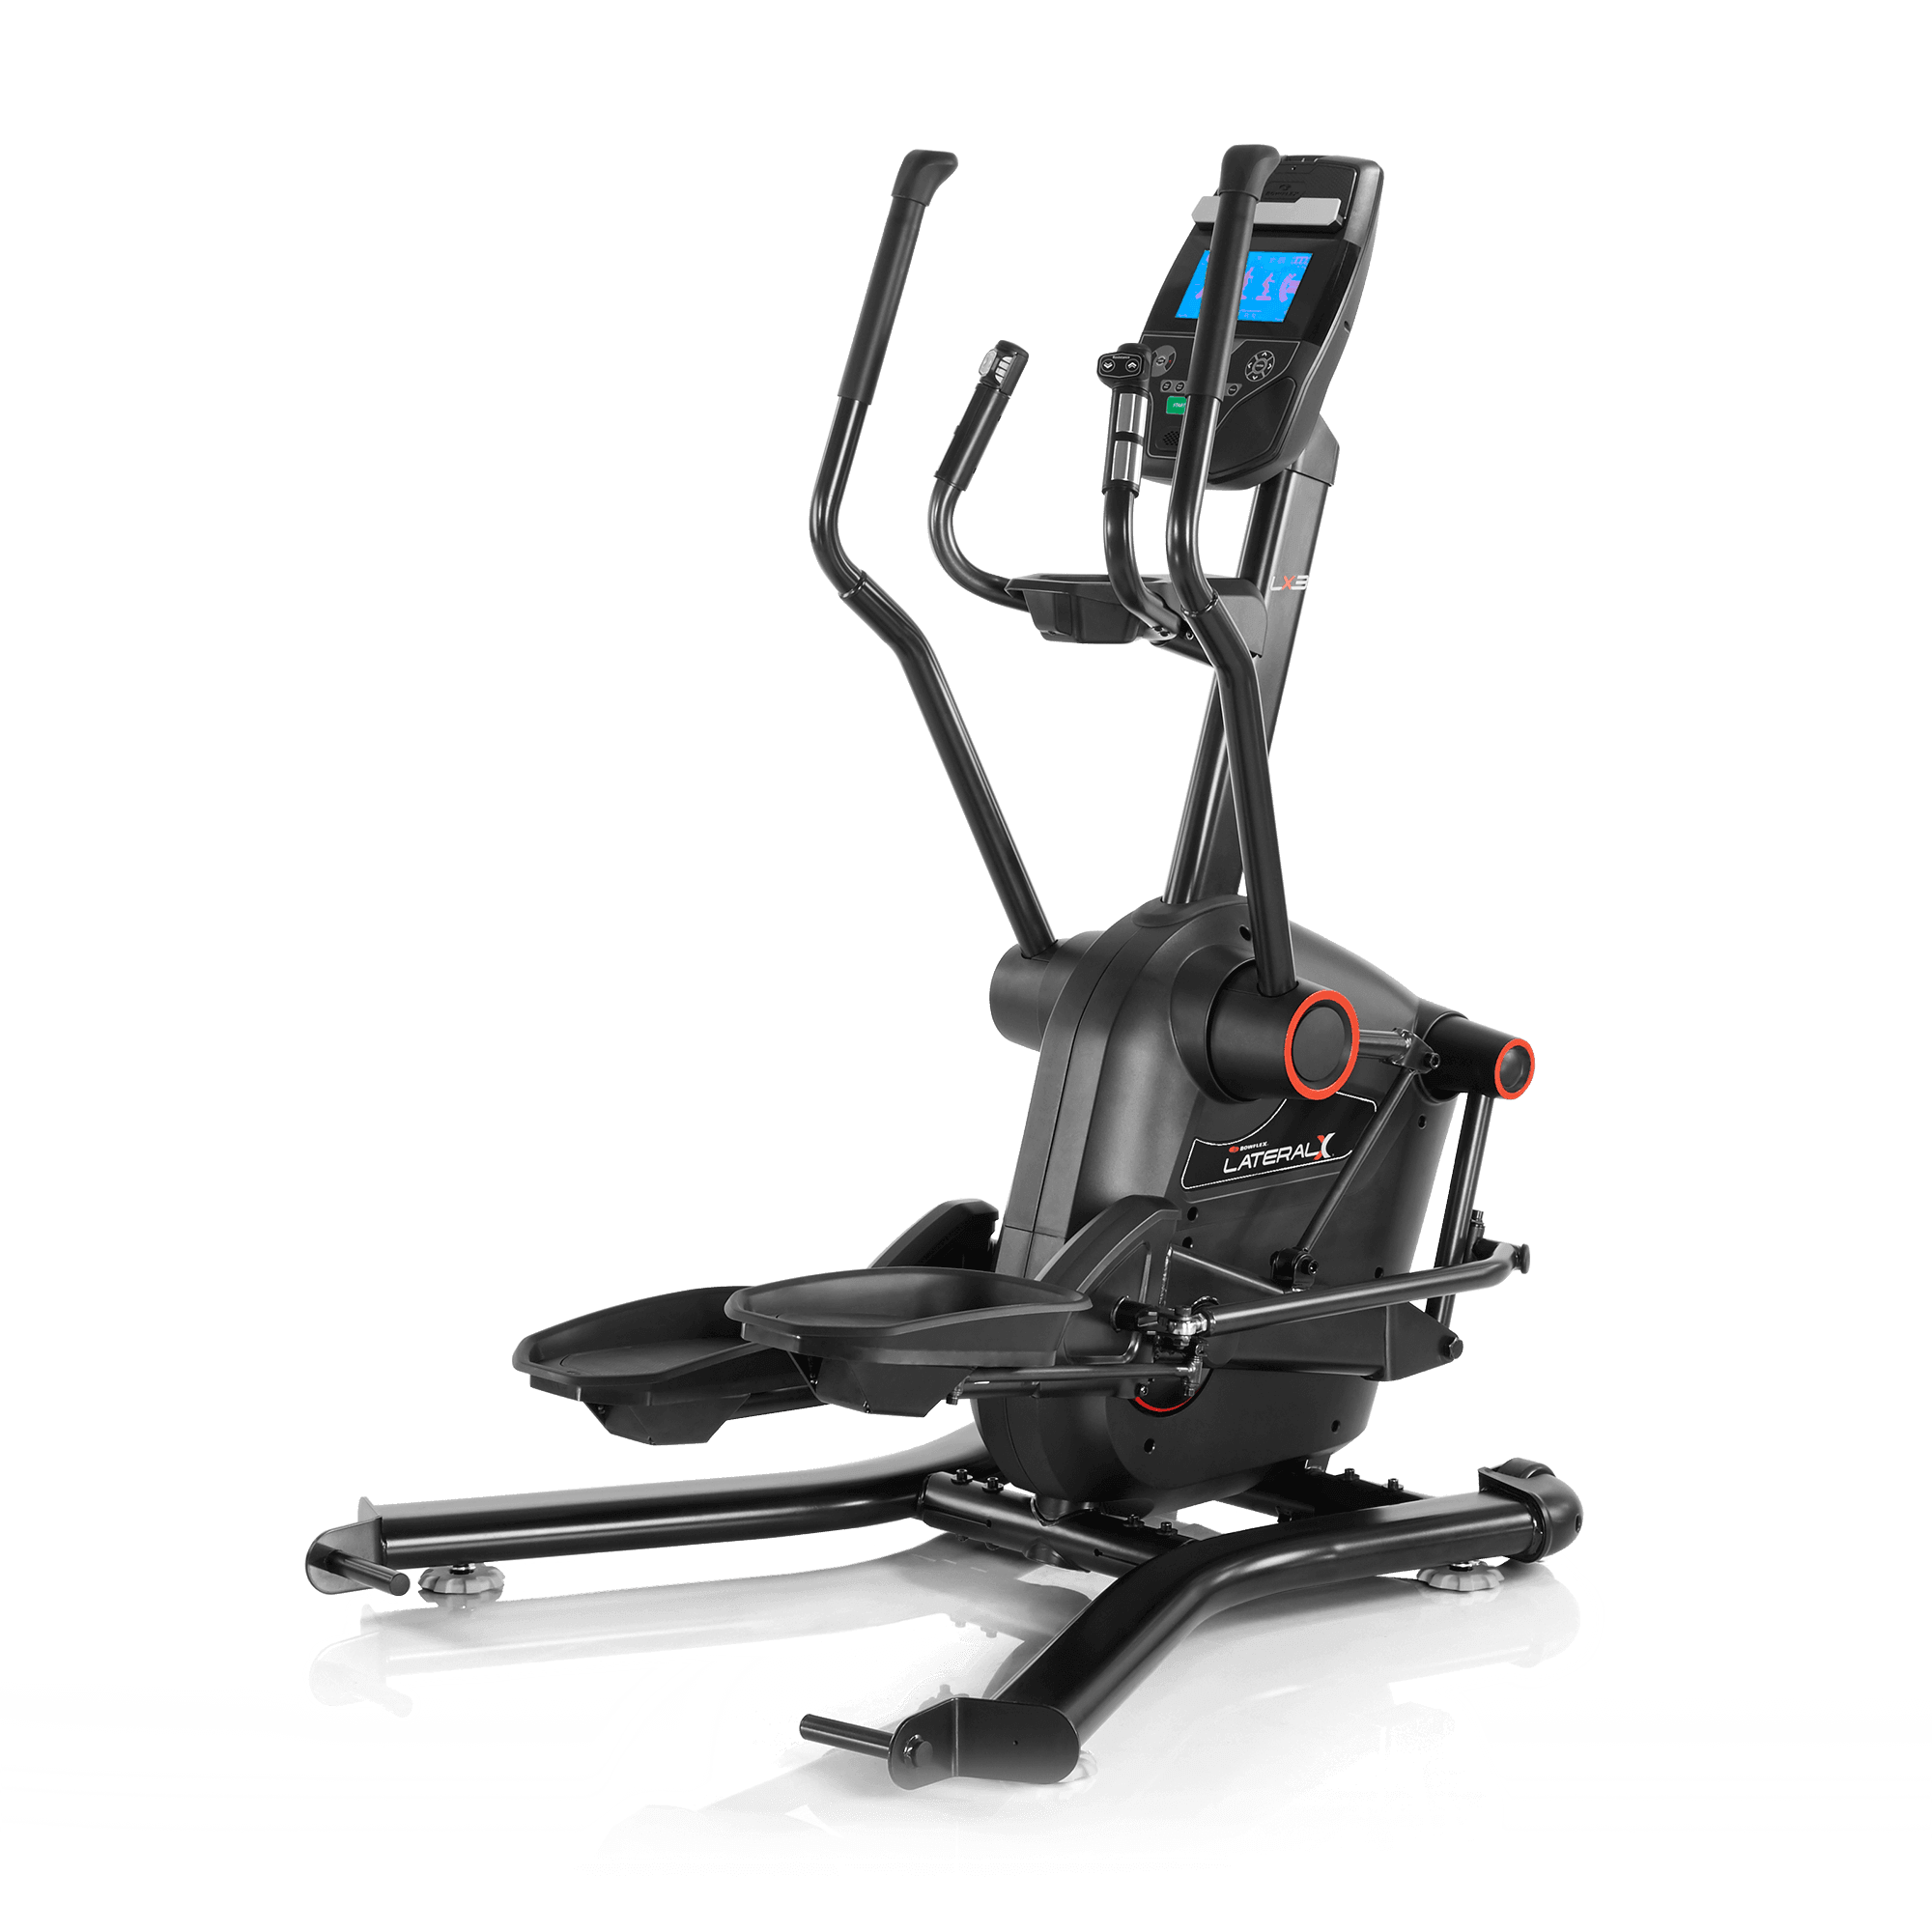 Bowflex Lateral X has a full black metal and hard plastic frame. It has 2 sets of hand grips and an LCD display for the centerpiece.